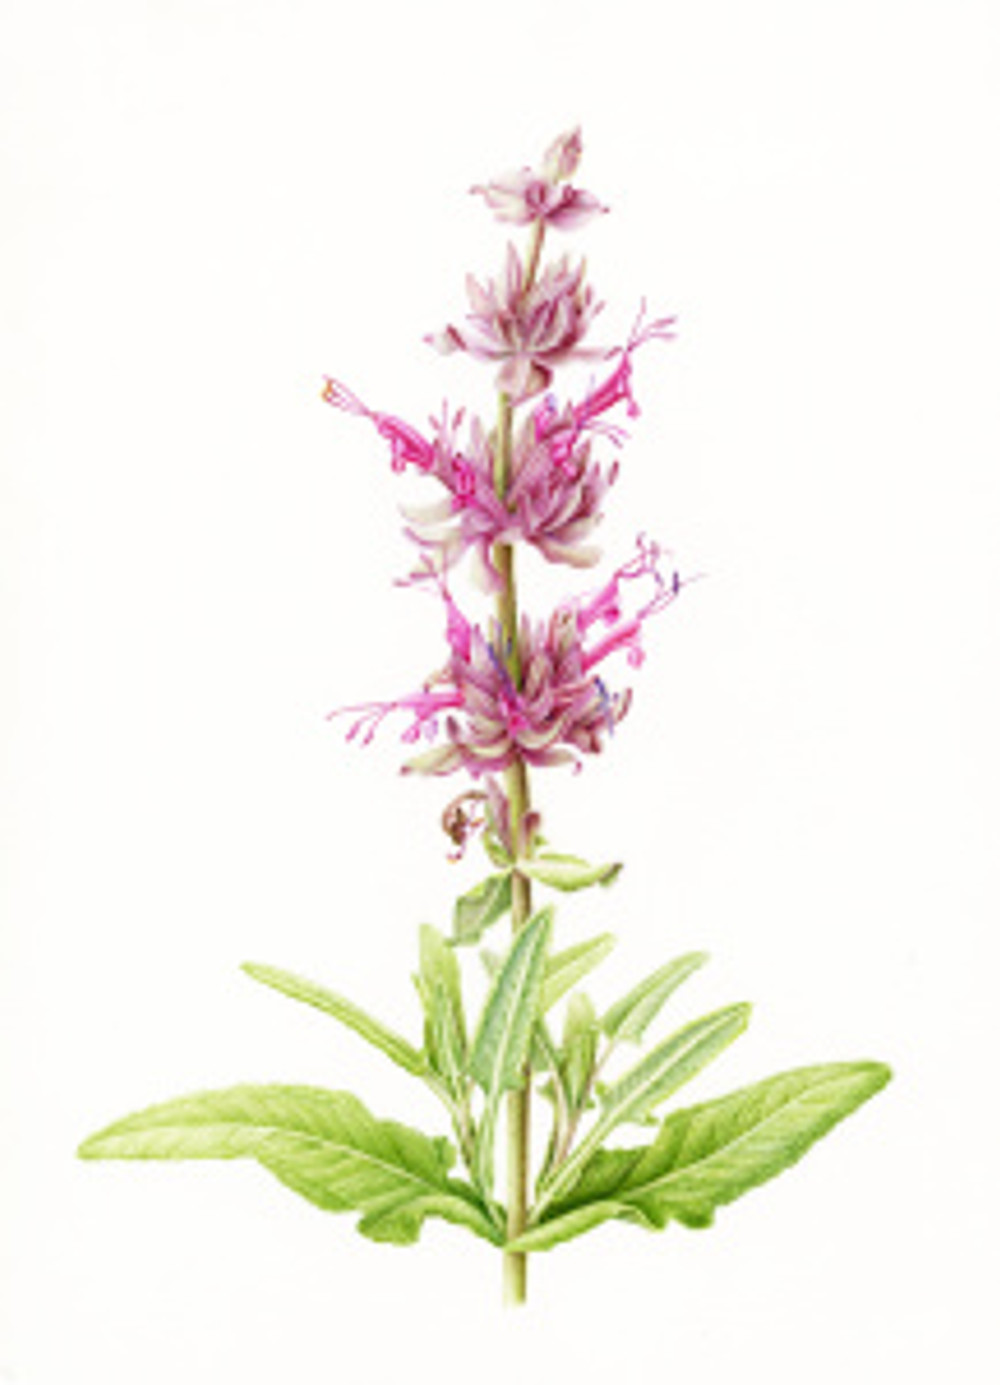 Salvia spathacea, watercolor on paper by Joan Keesey, © 2016, all rights reserved.